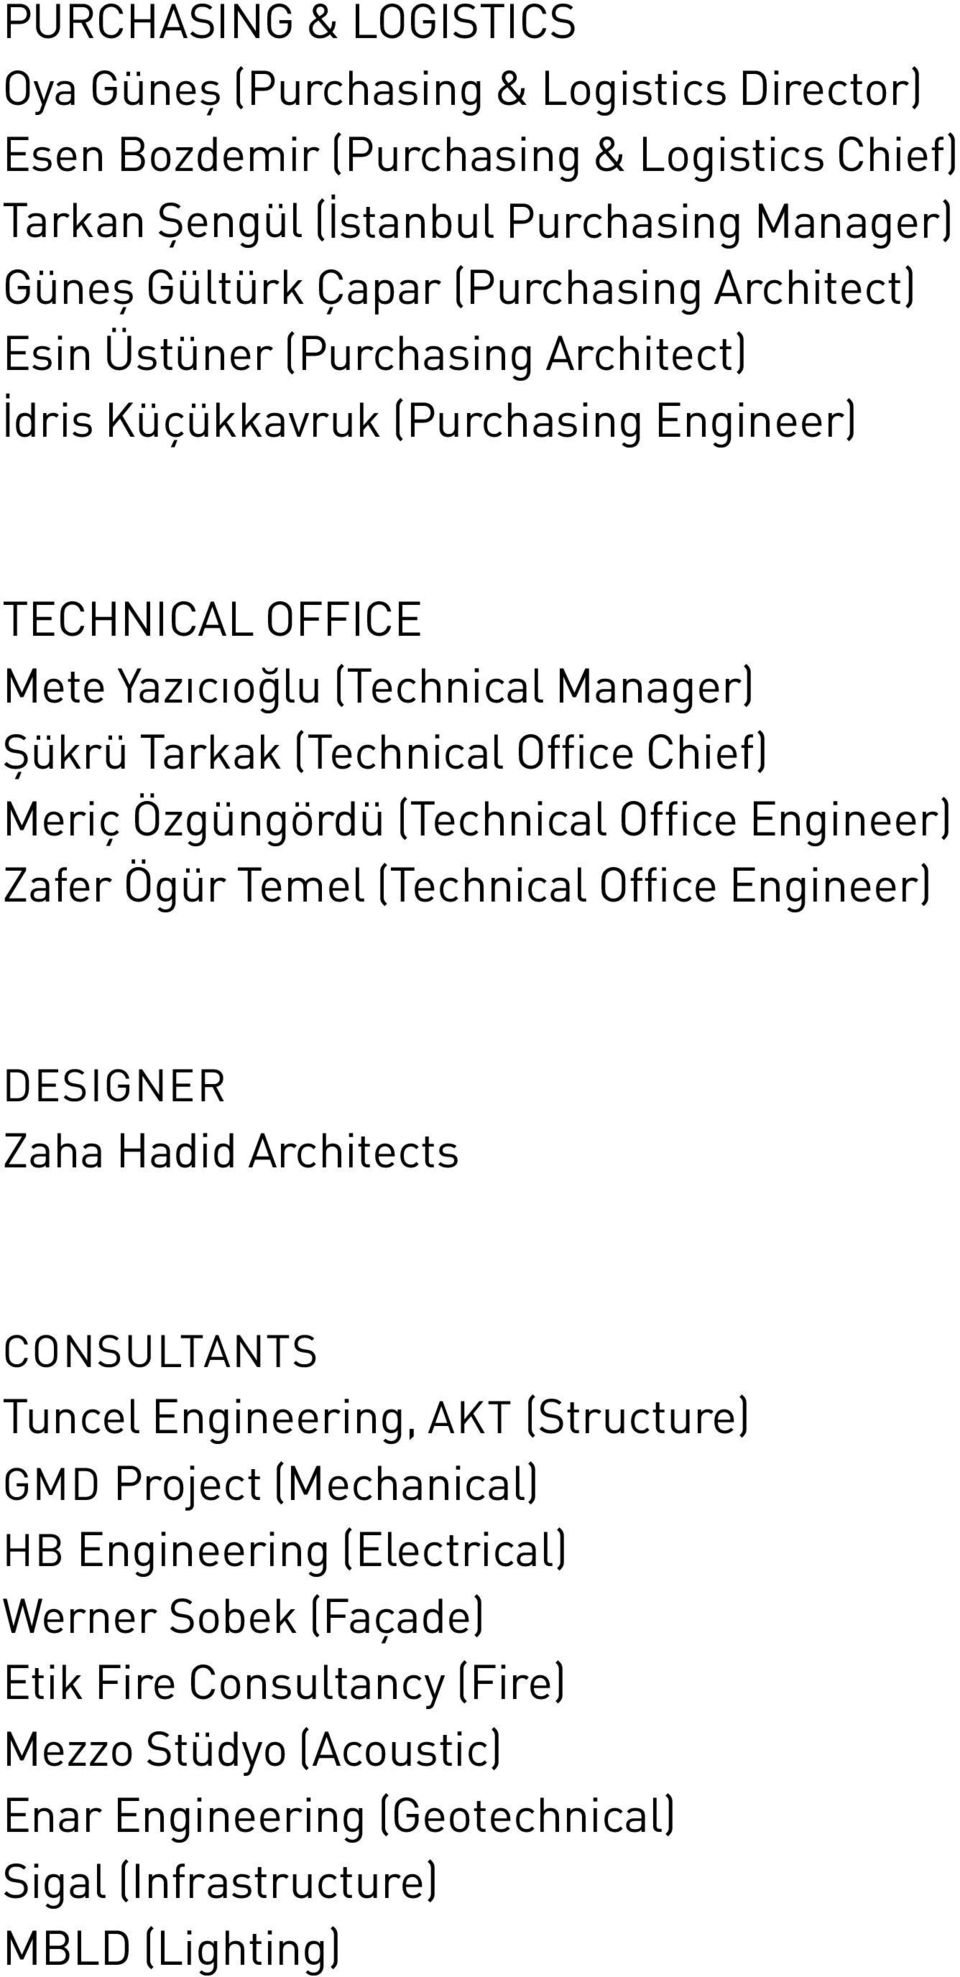 Chief) Meriç Özgüngördü (Technical Office Engineer) Zafer Ögür Temel (Technical Office Engineer) DESIGNER Zaha Hadid Architects CONSULTANTS Tuncel Engineering, AKT (Structure) GMD